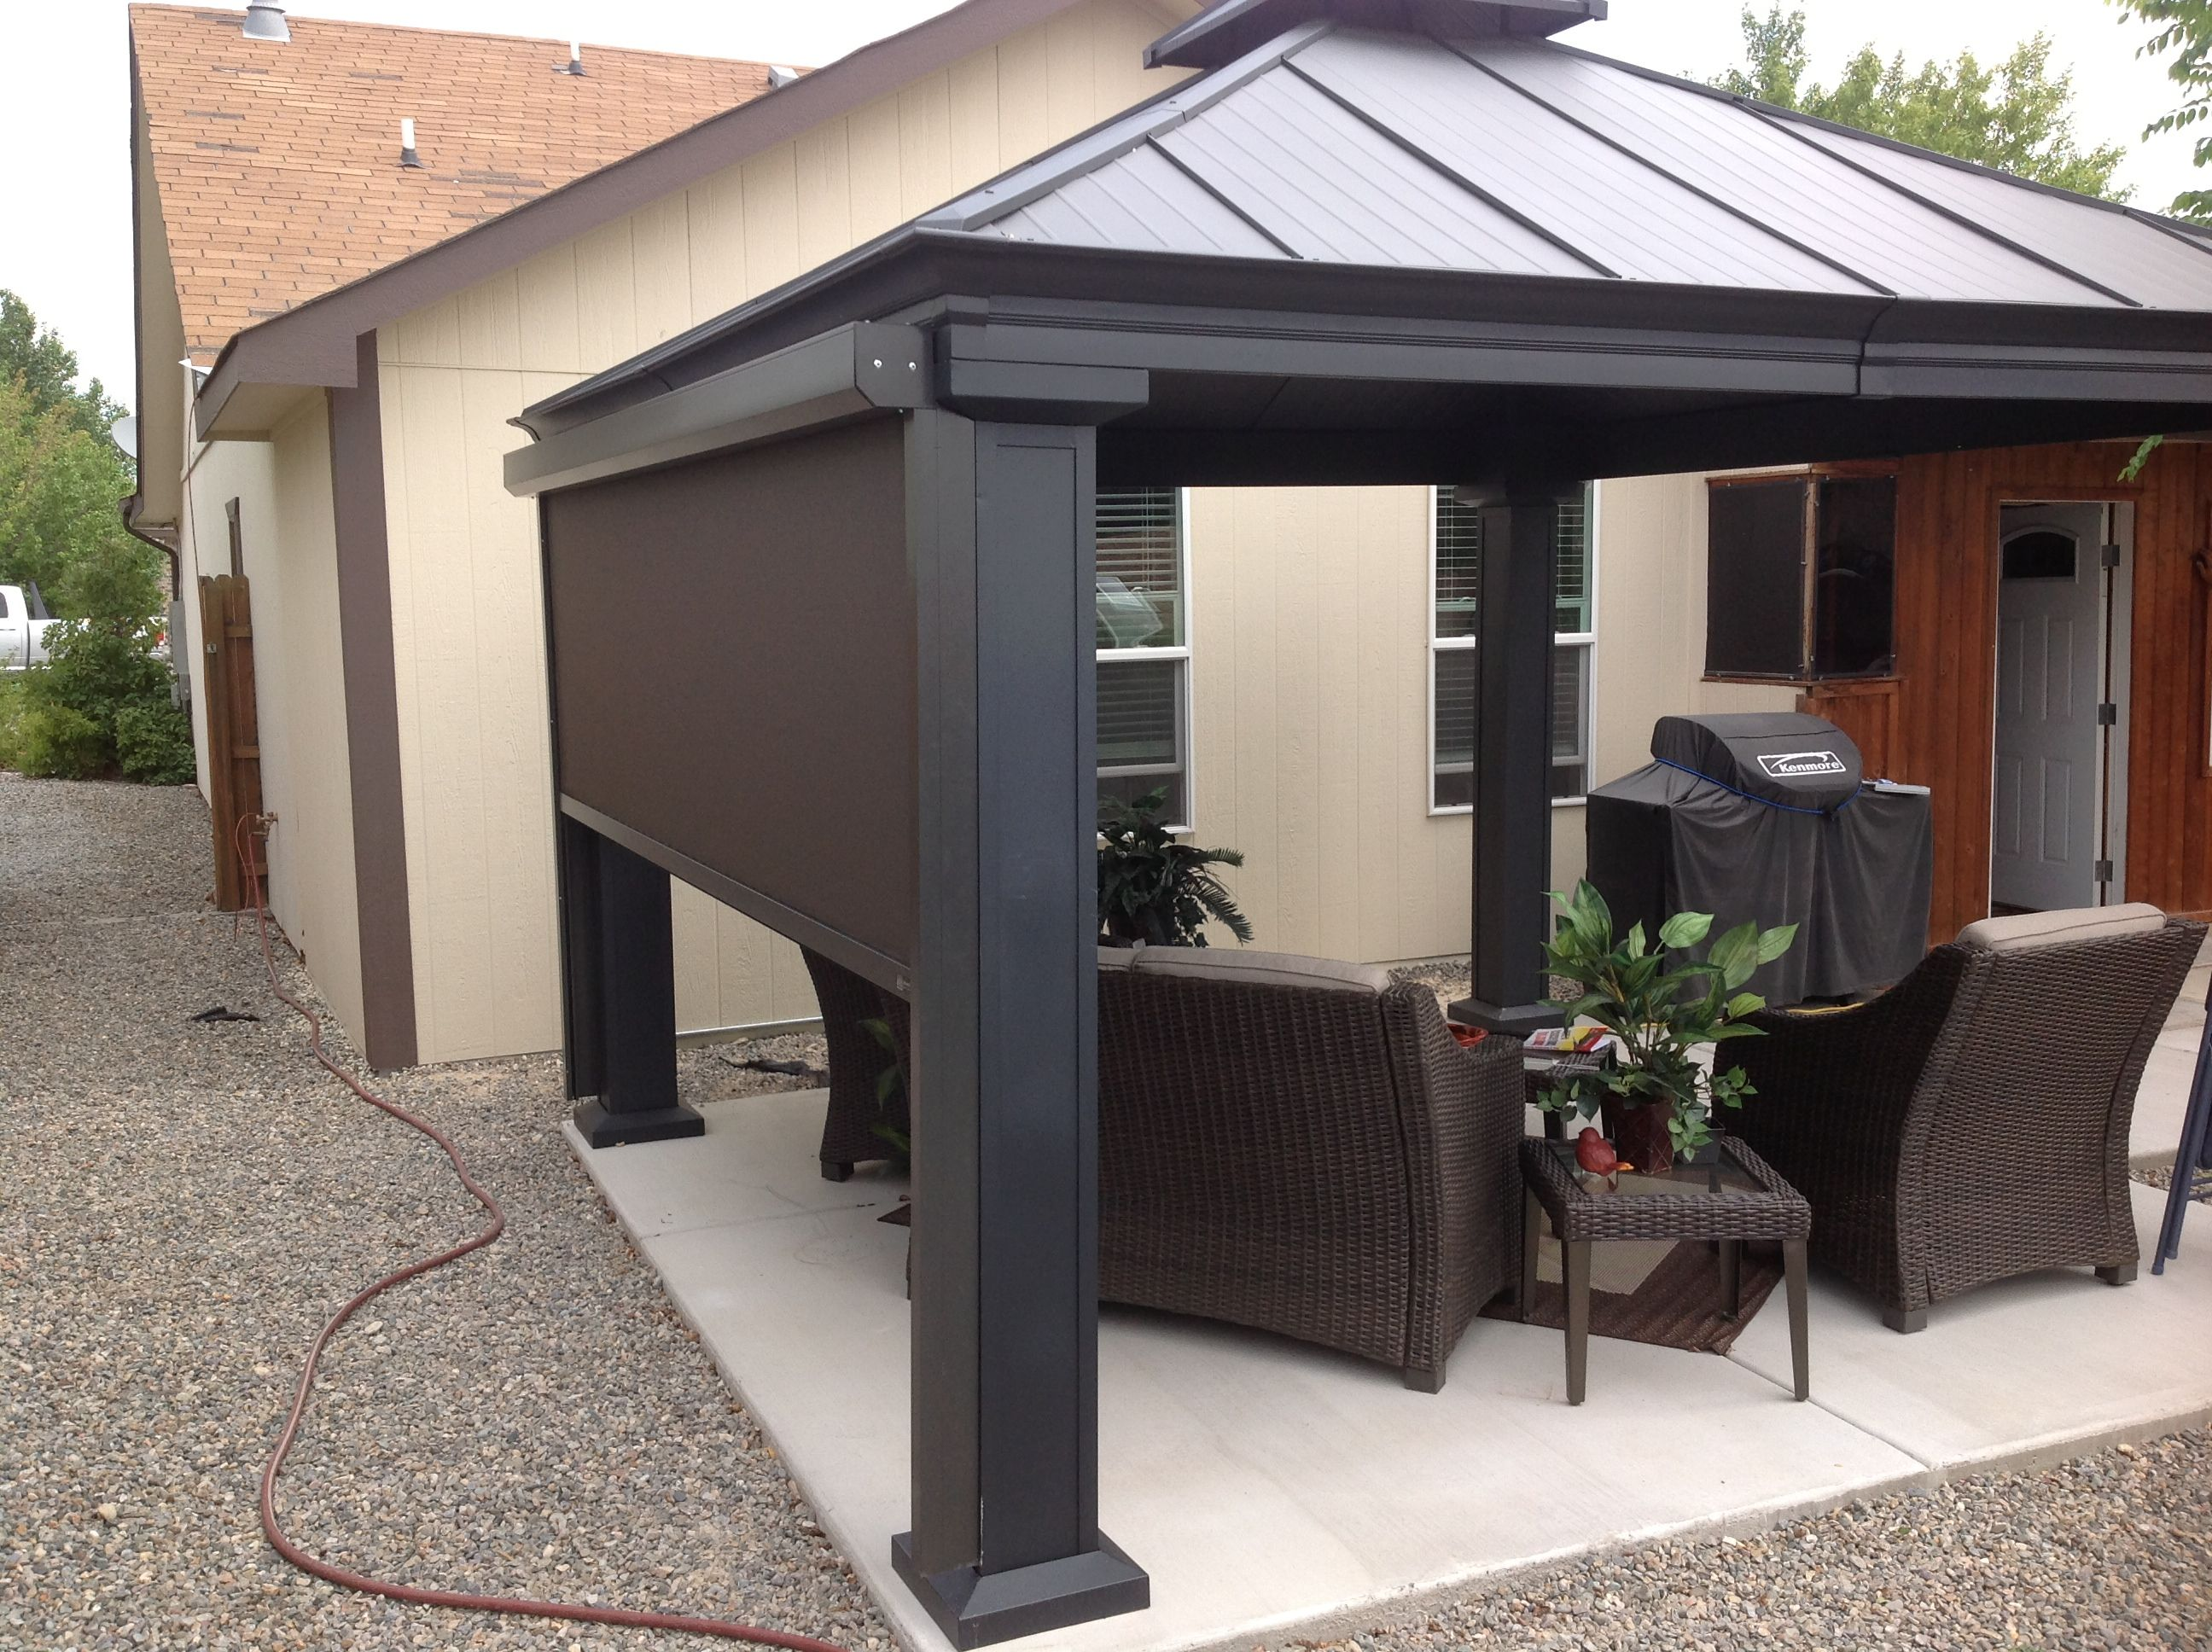 Exterior Screen Shades Are Perfect To Shade Outdoor Living